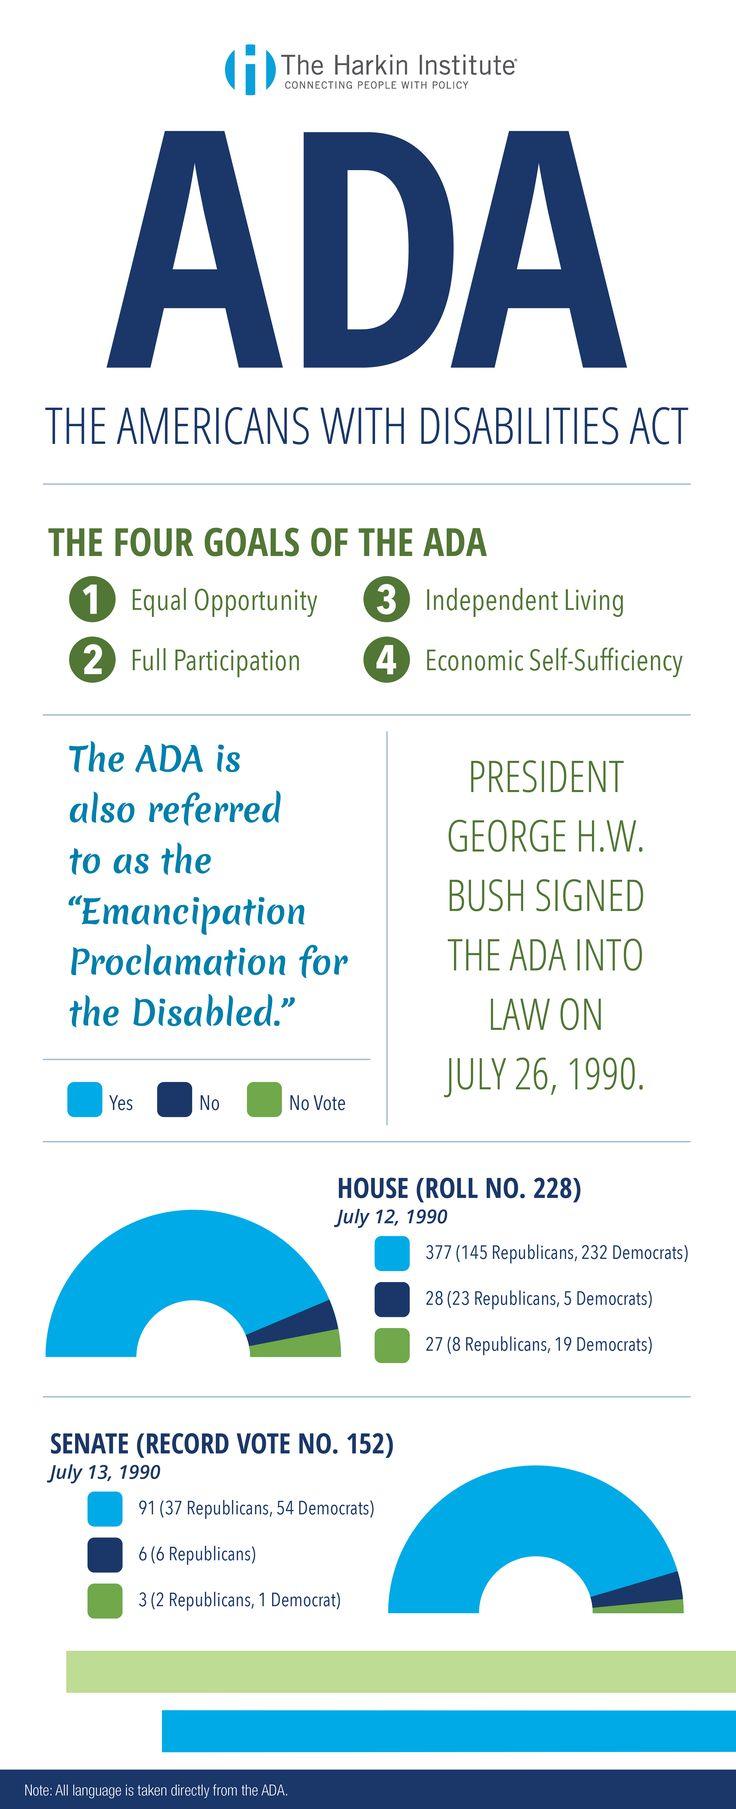 Senator Tom Harkin (Retired) is most known for his work in passing the Americans with Disabilities Act (ADA) in 1990. To celebrate the ADA's 27th anniversary, The Harkin Institute is releasing a series of infographics explaining the five sections of the ADA. Follow along throughout the week to learn more about Sen. Harkin's lasting legacy. #ADAWeek